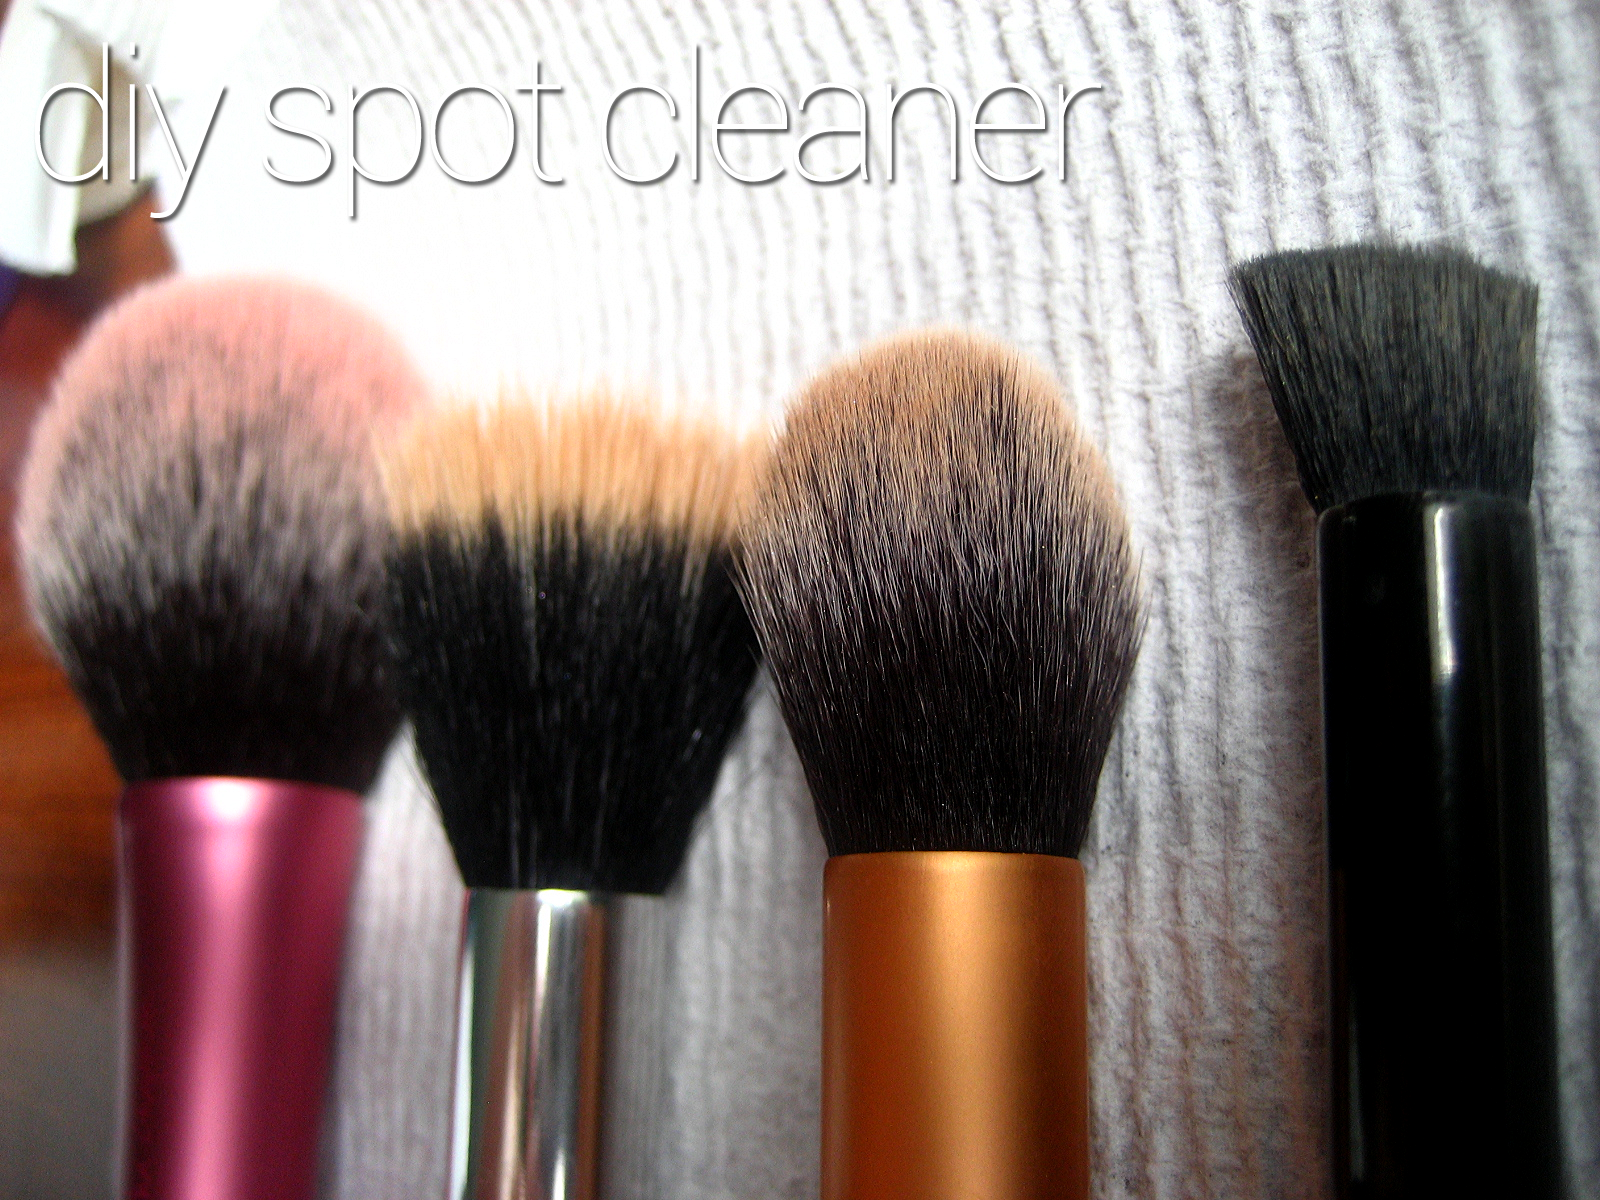 DIY Makeup Brush Cleaner (isopropyl alcohol, dish soap